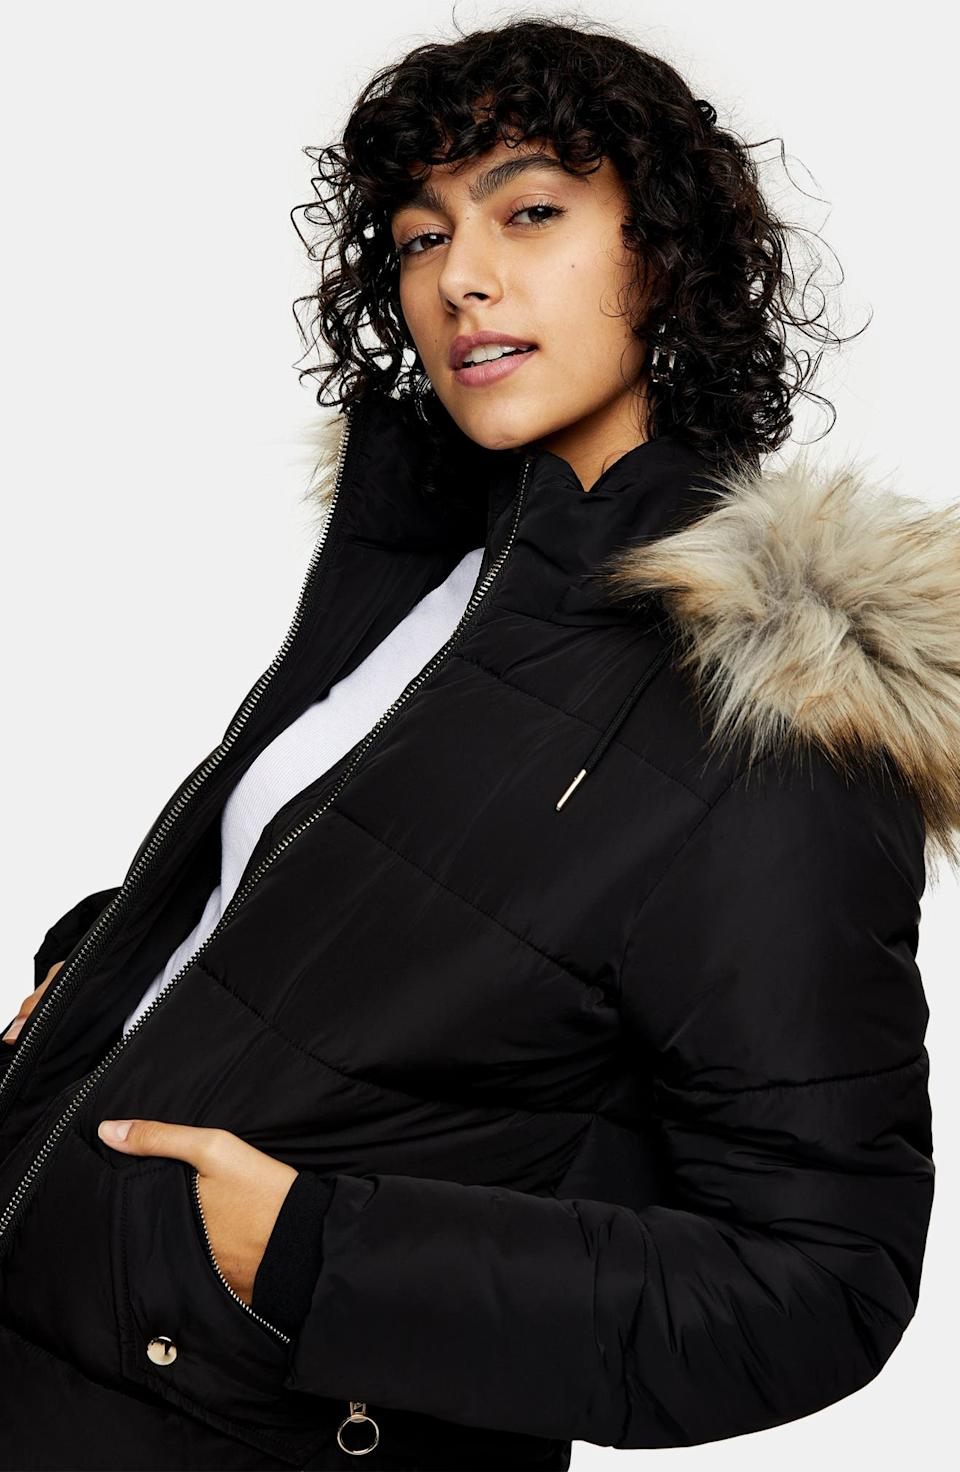 Save up to 50% on the latest outerwear styles with Nordstrom's winter coat sale. Image via Nordstrom.